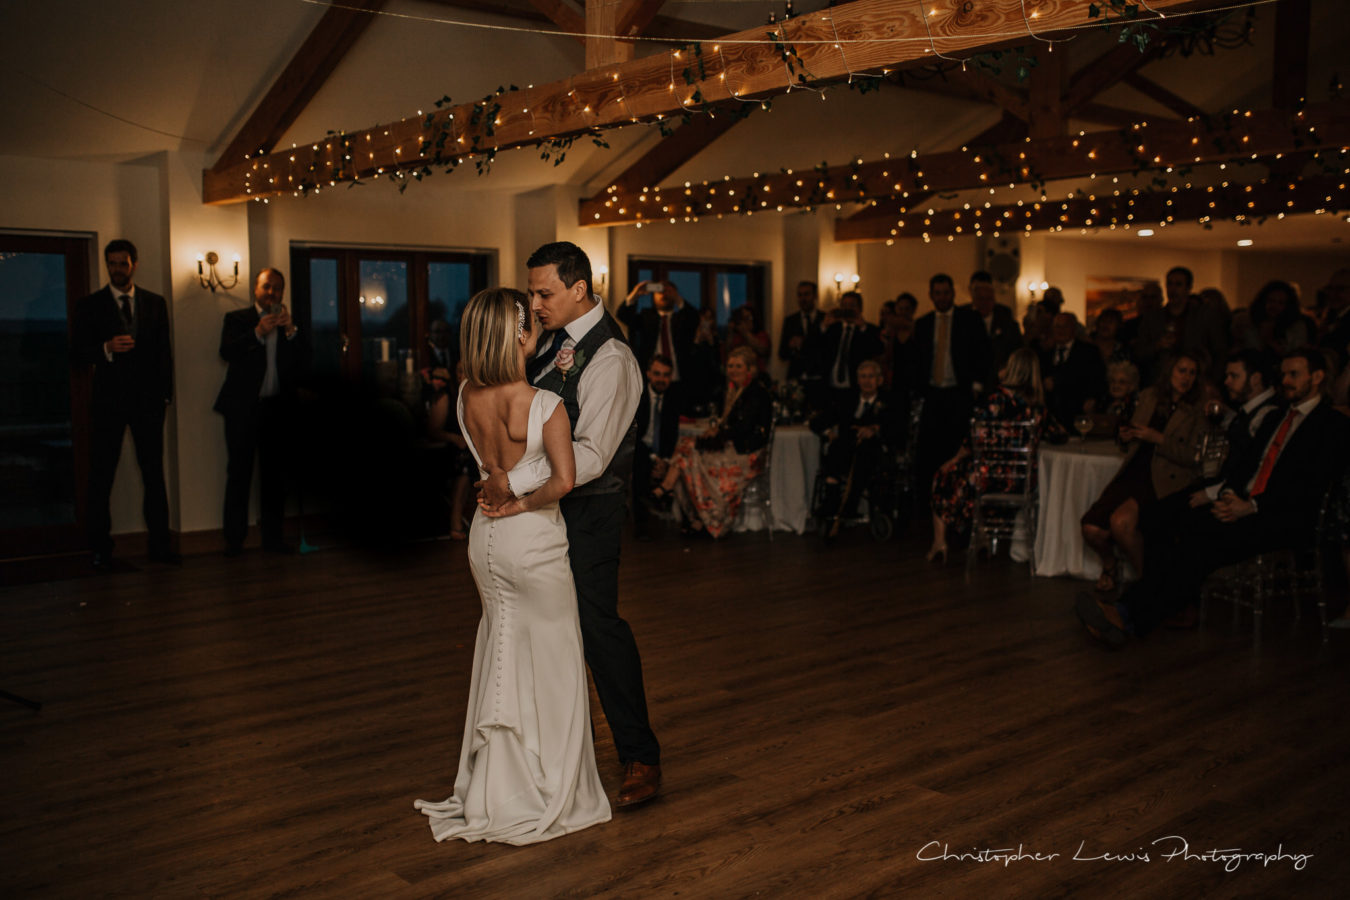 Thief-Hall-Wedding-Christopher-Lewis-Photography-77